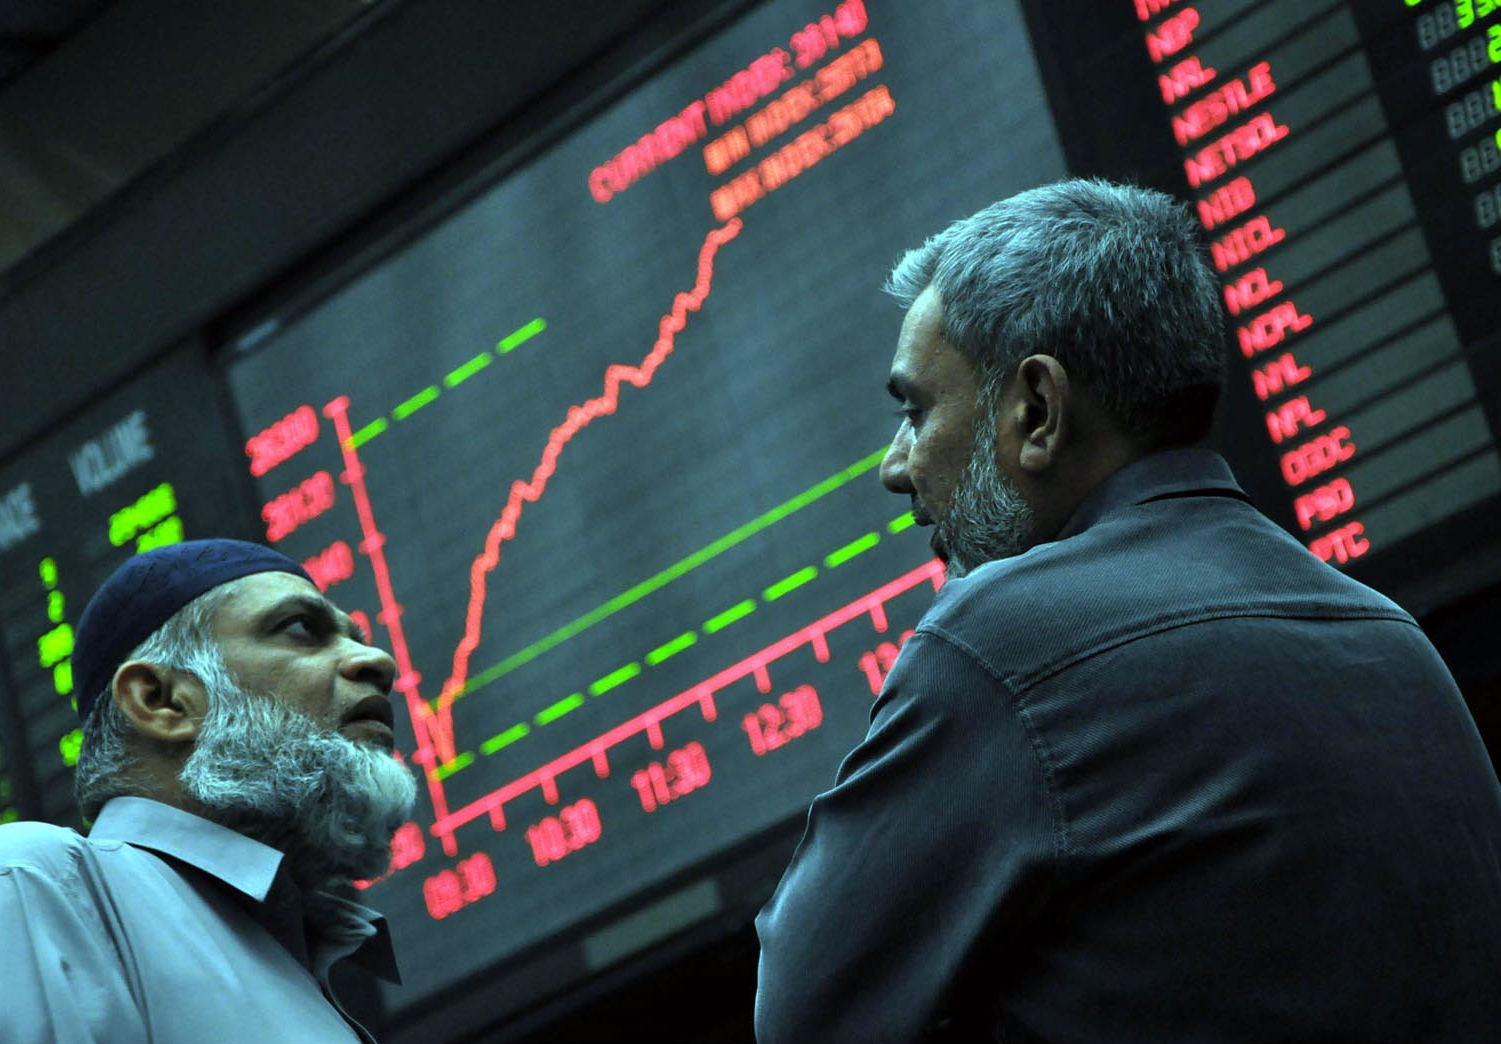 karachi-stock-exchange-inp-2-2-2-2-2-3-3-2-3-2-2-2-2